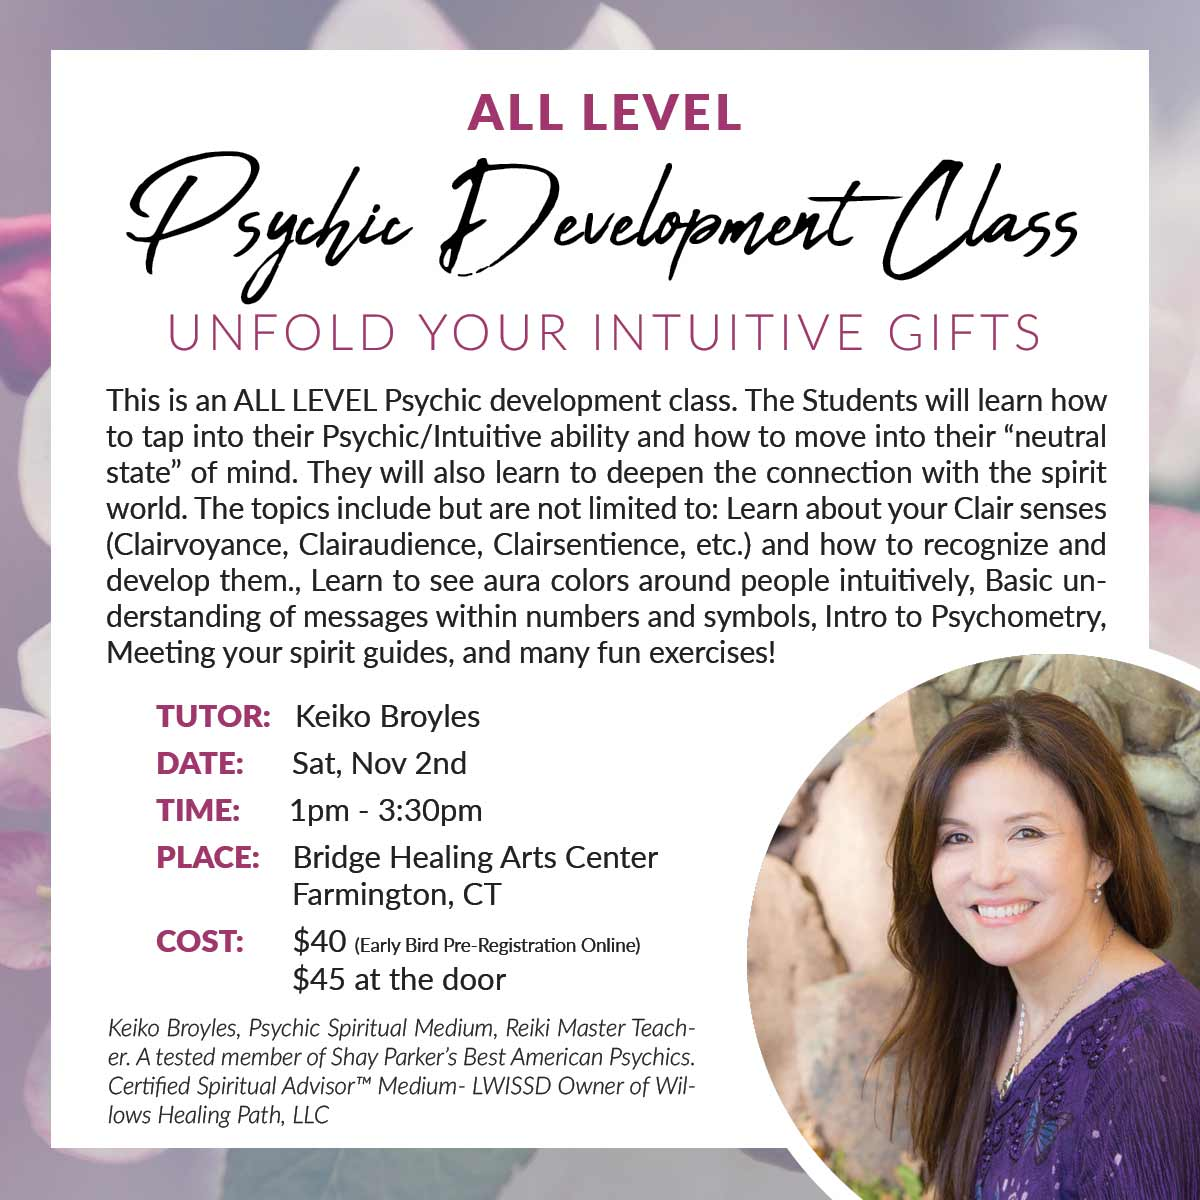 All Level Psychic Development Class